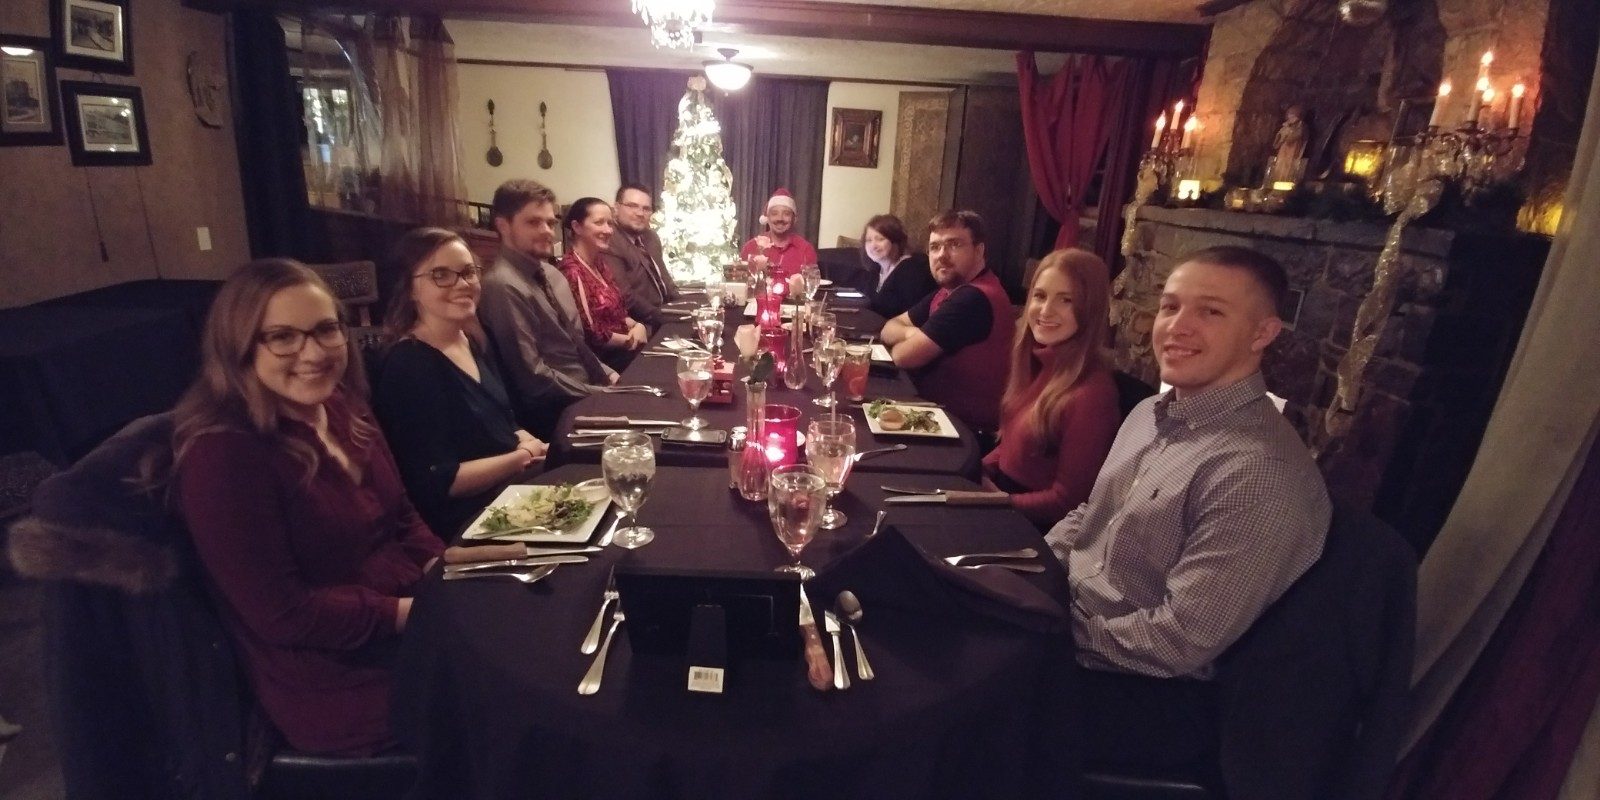 The T&S crew celebrate Christmas 2017 at Castle Falls in Oklahoma City.